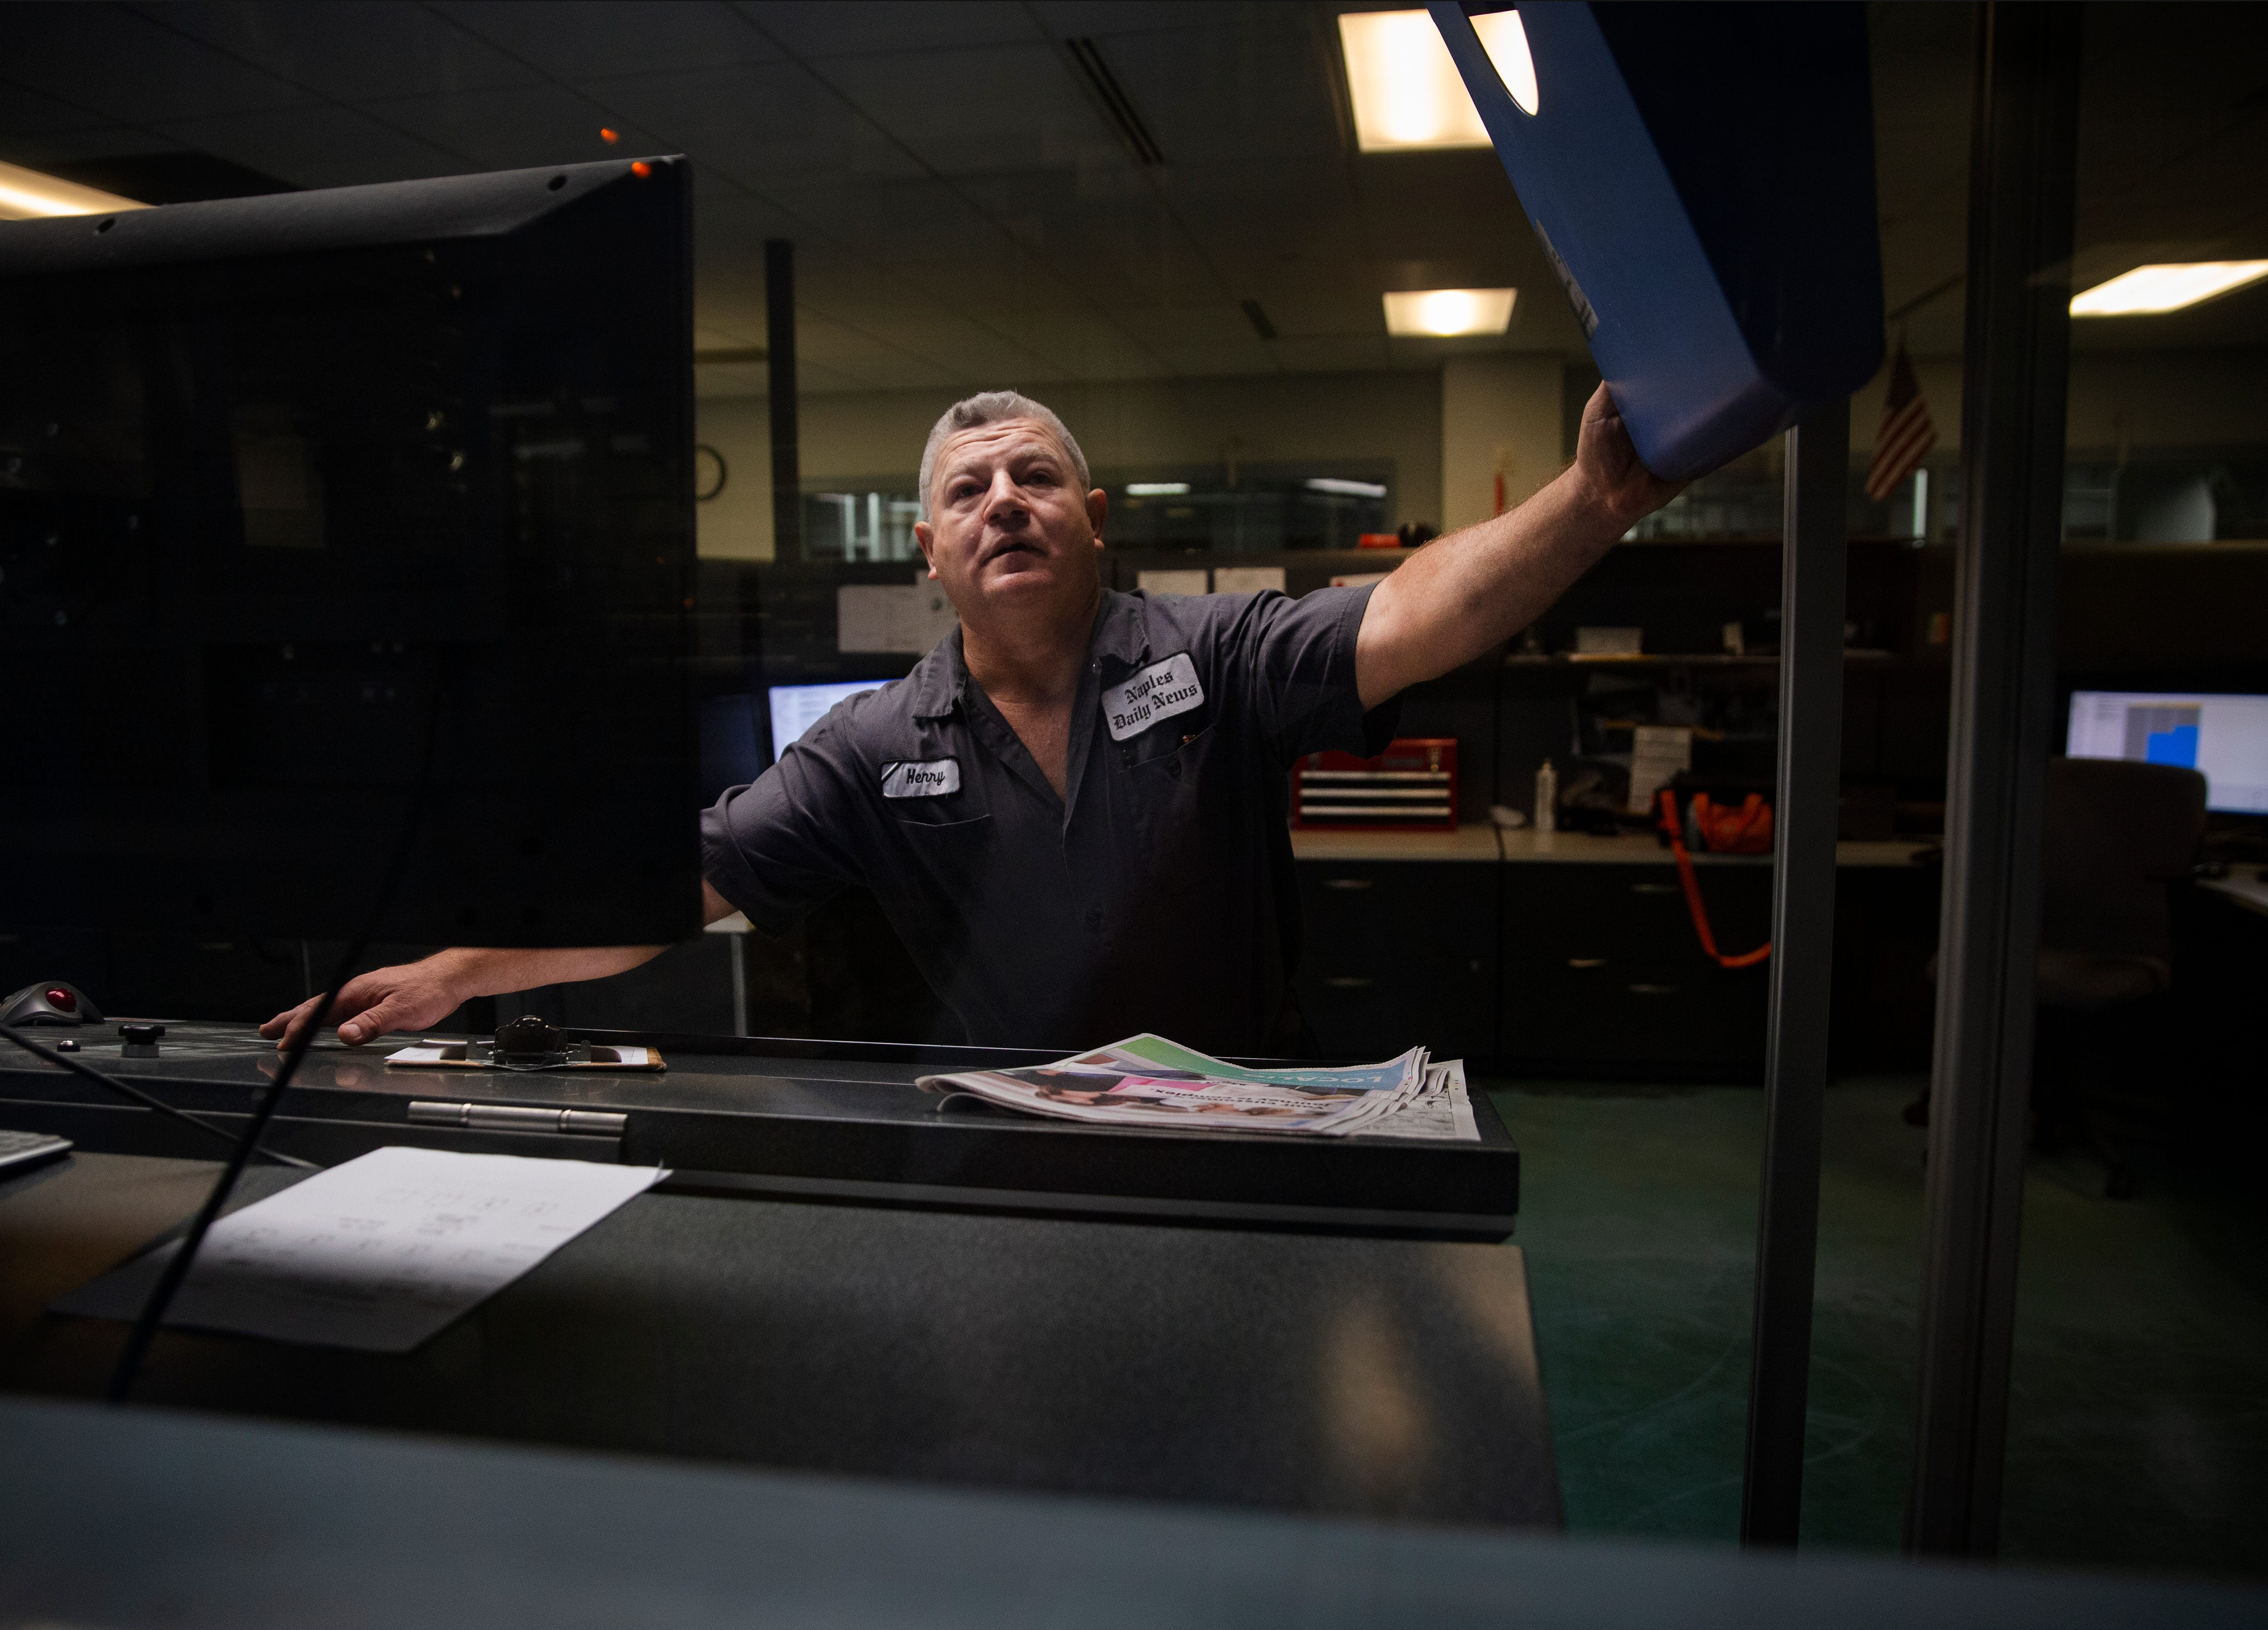 Press operator Henry Reyes monitors computers during a press run on Wednesday, Feb. 12, 2020, at the Naples Daily News.